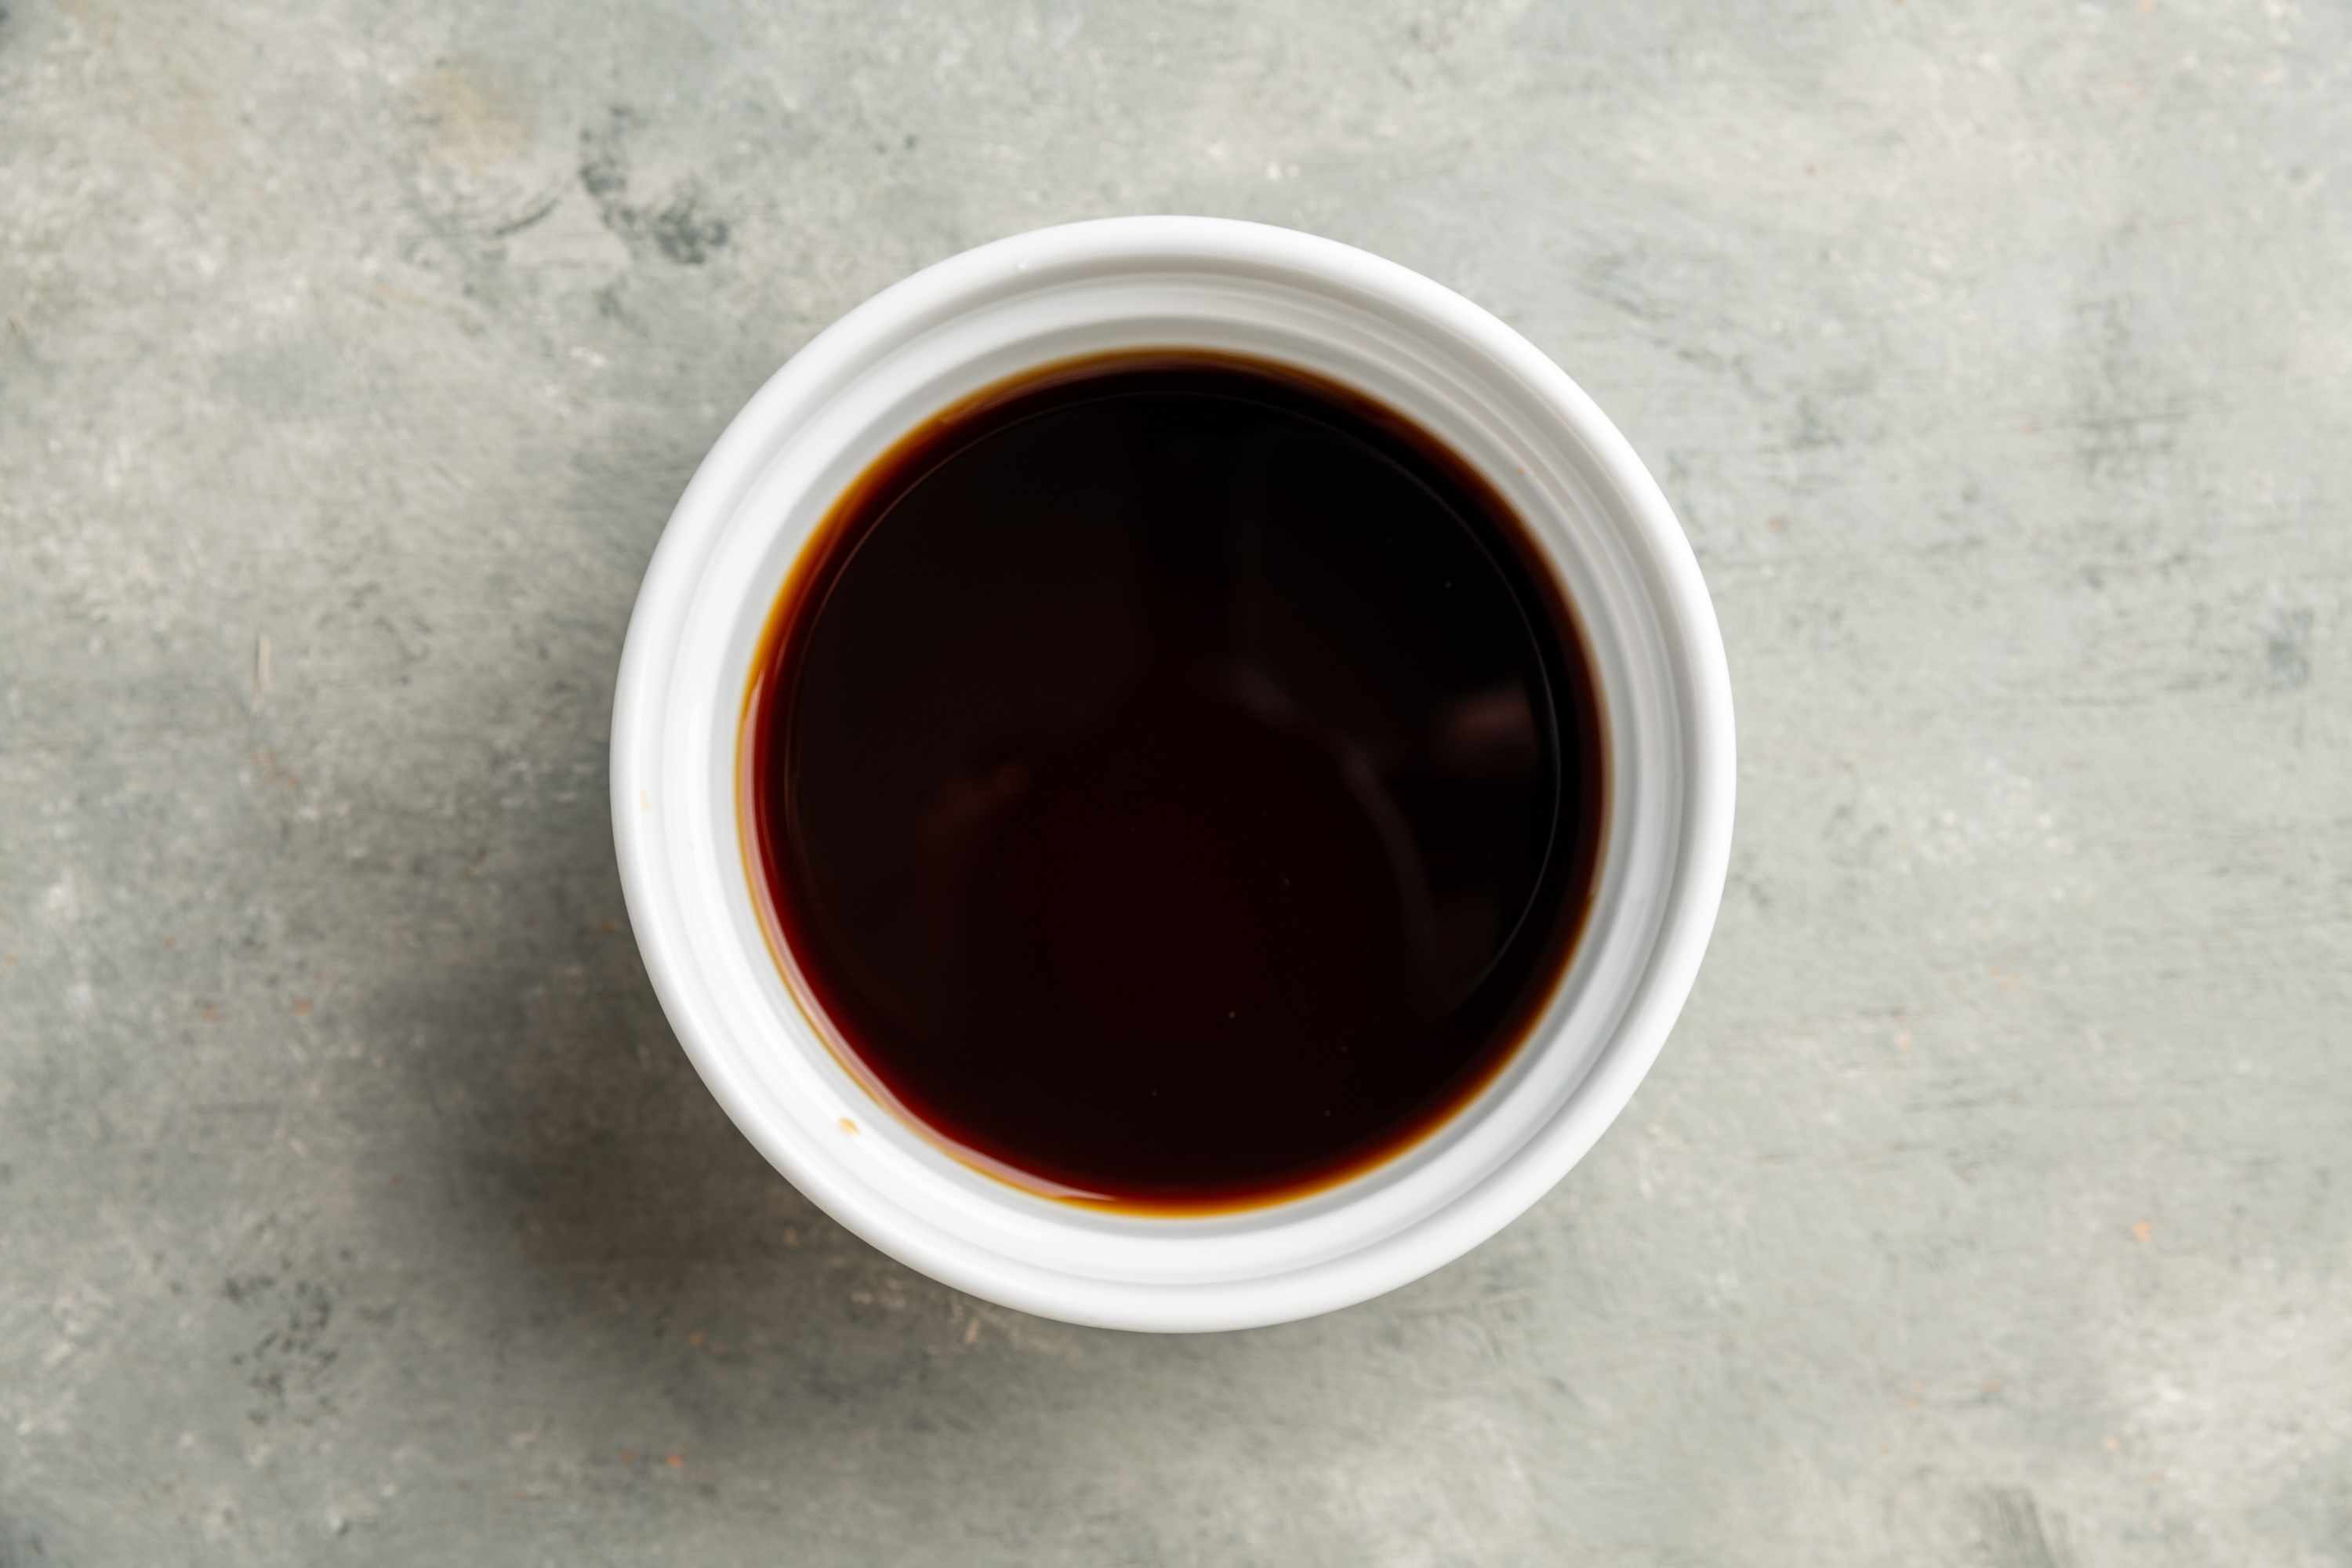 combining the dark and light soy sauces, vinegar, rice wine or dry sherry, sugar, and chicken broth in a small bowl